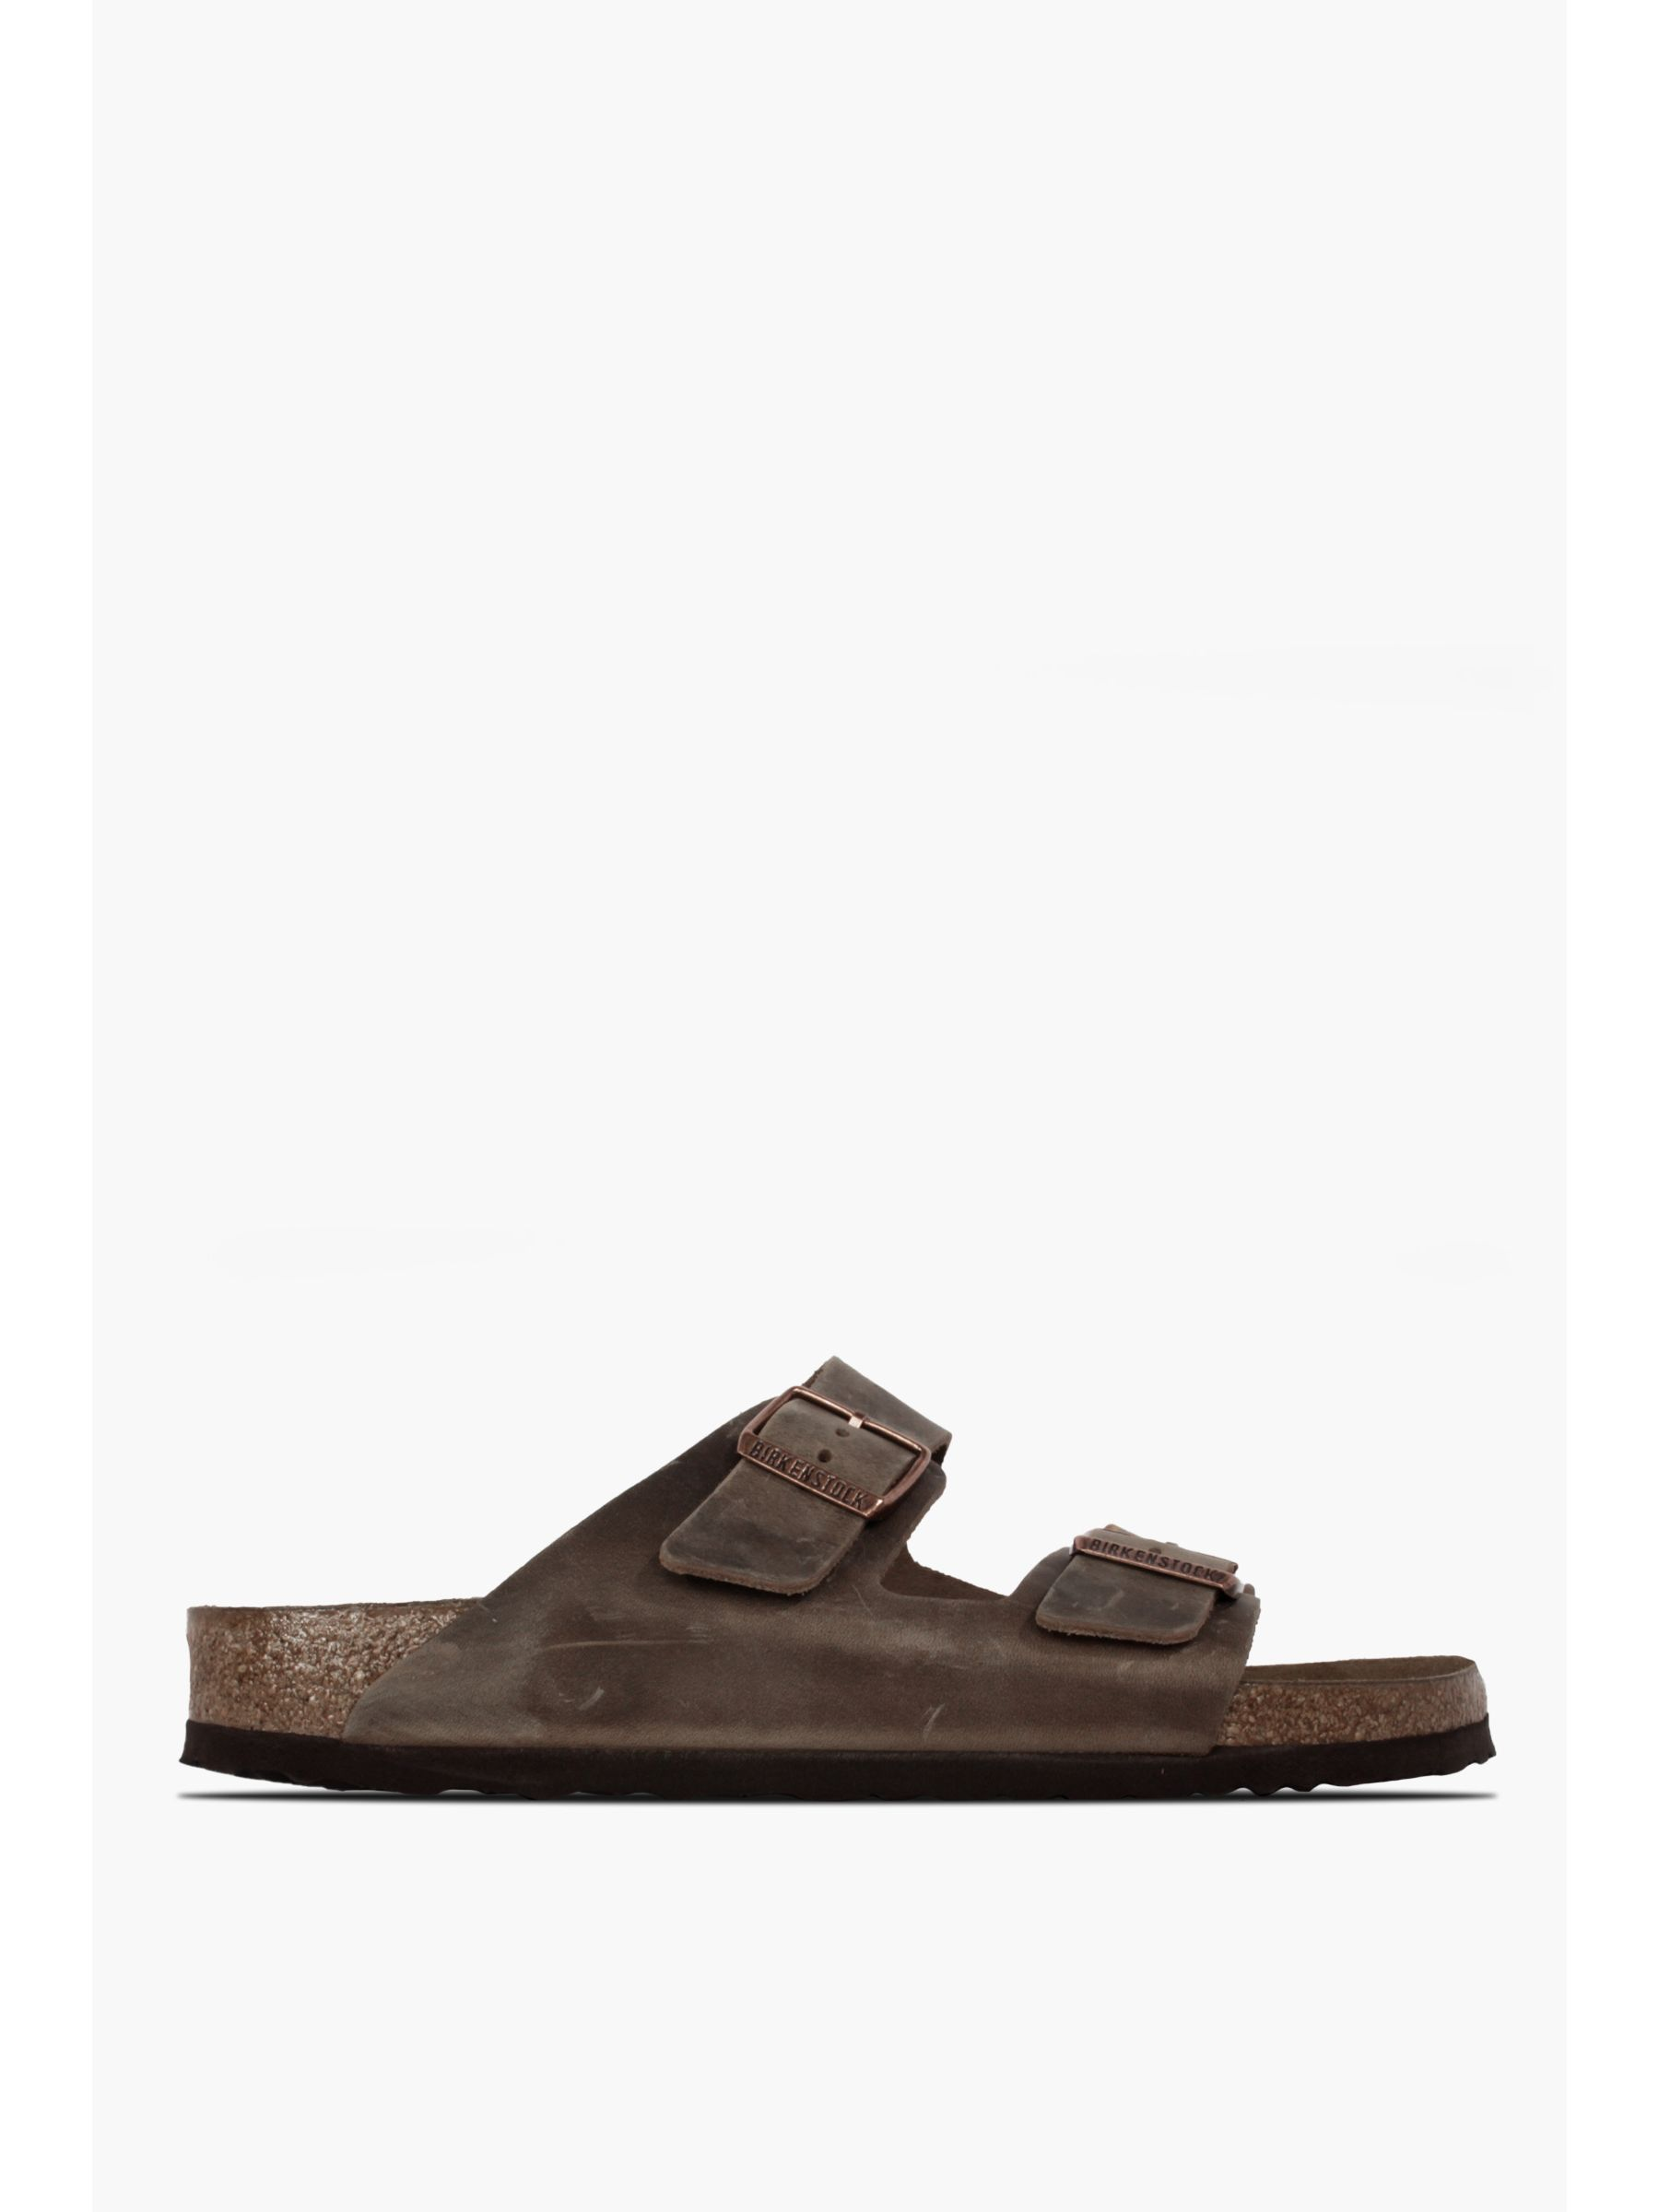 111022465_birkenstock_arizona_tabacco_brown_a.jpg